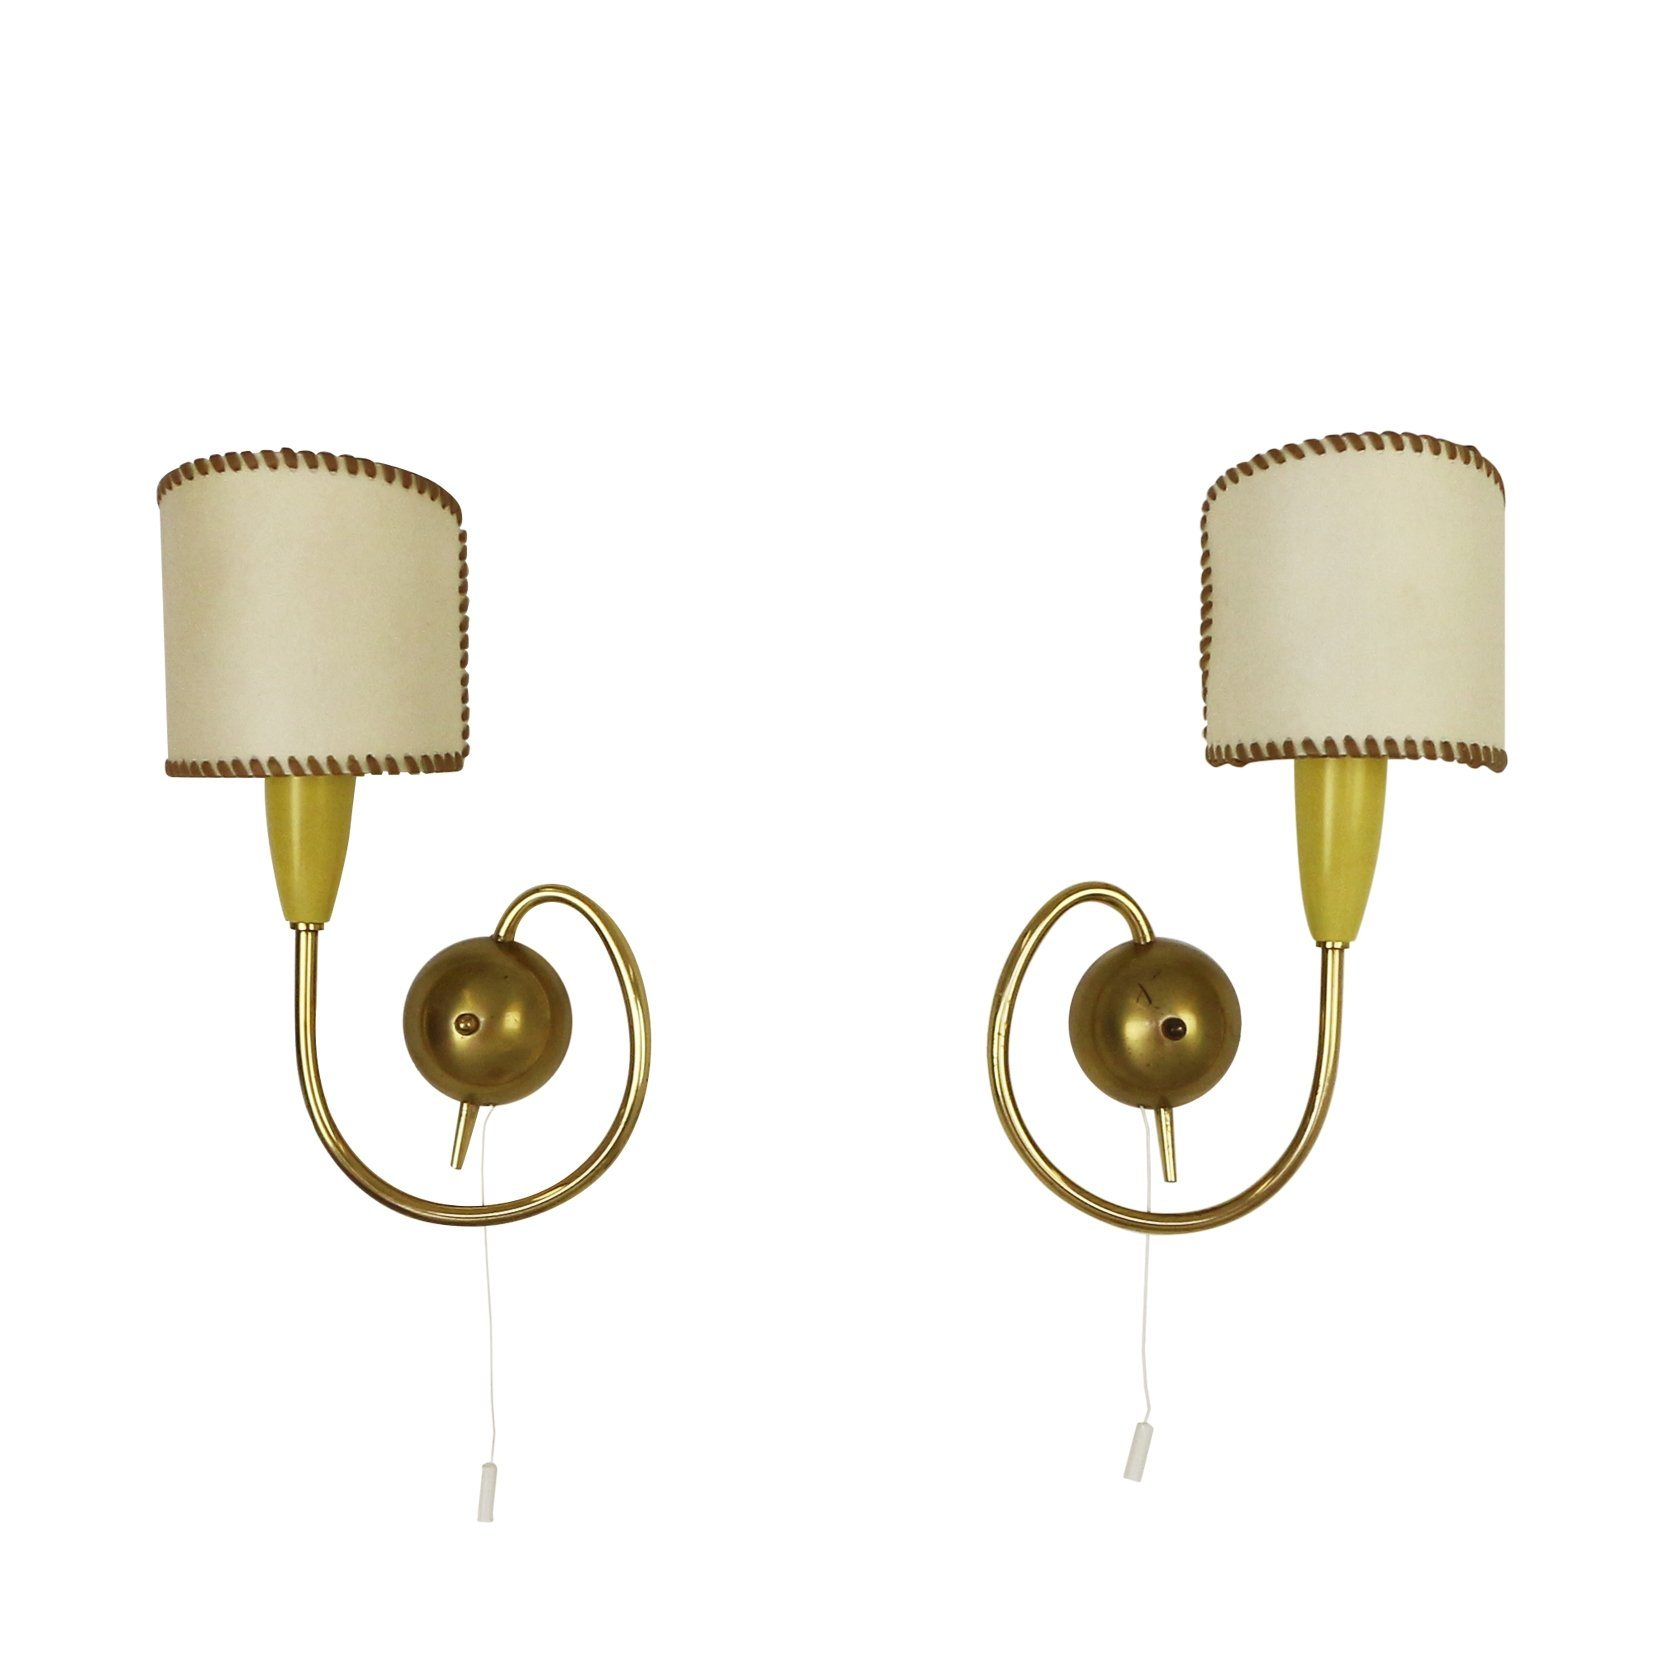 Pair of brass french wall lights 1950s 1320 pair of brass french wall lights 1950s aloadofball Images